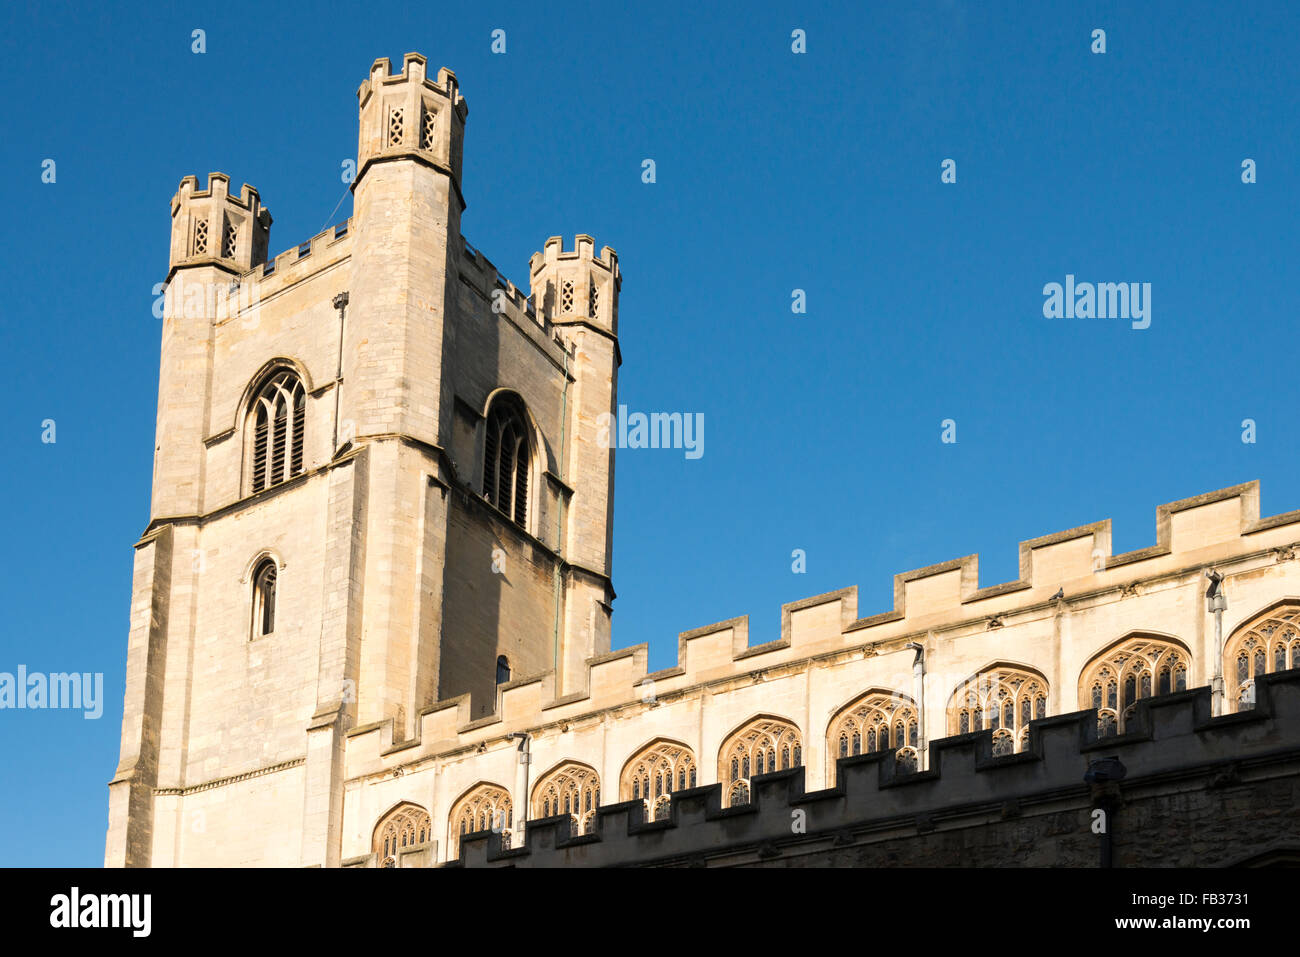 The Church tower at Great St Mary's church Cambridge UK - Stock Image